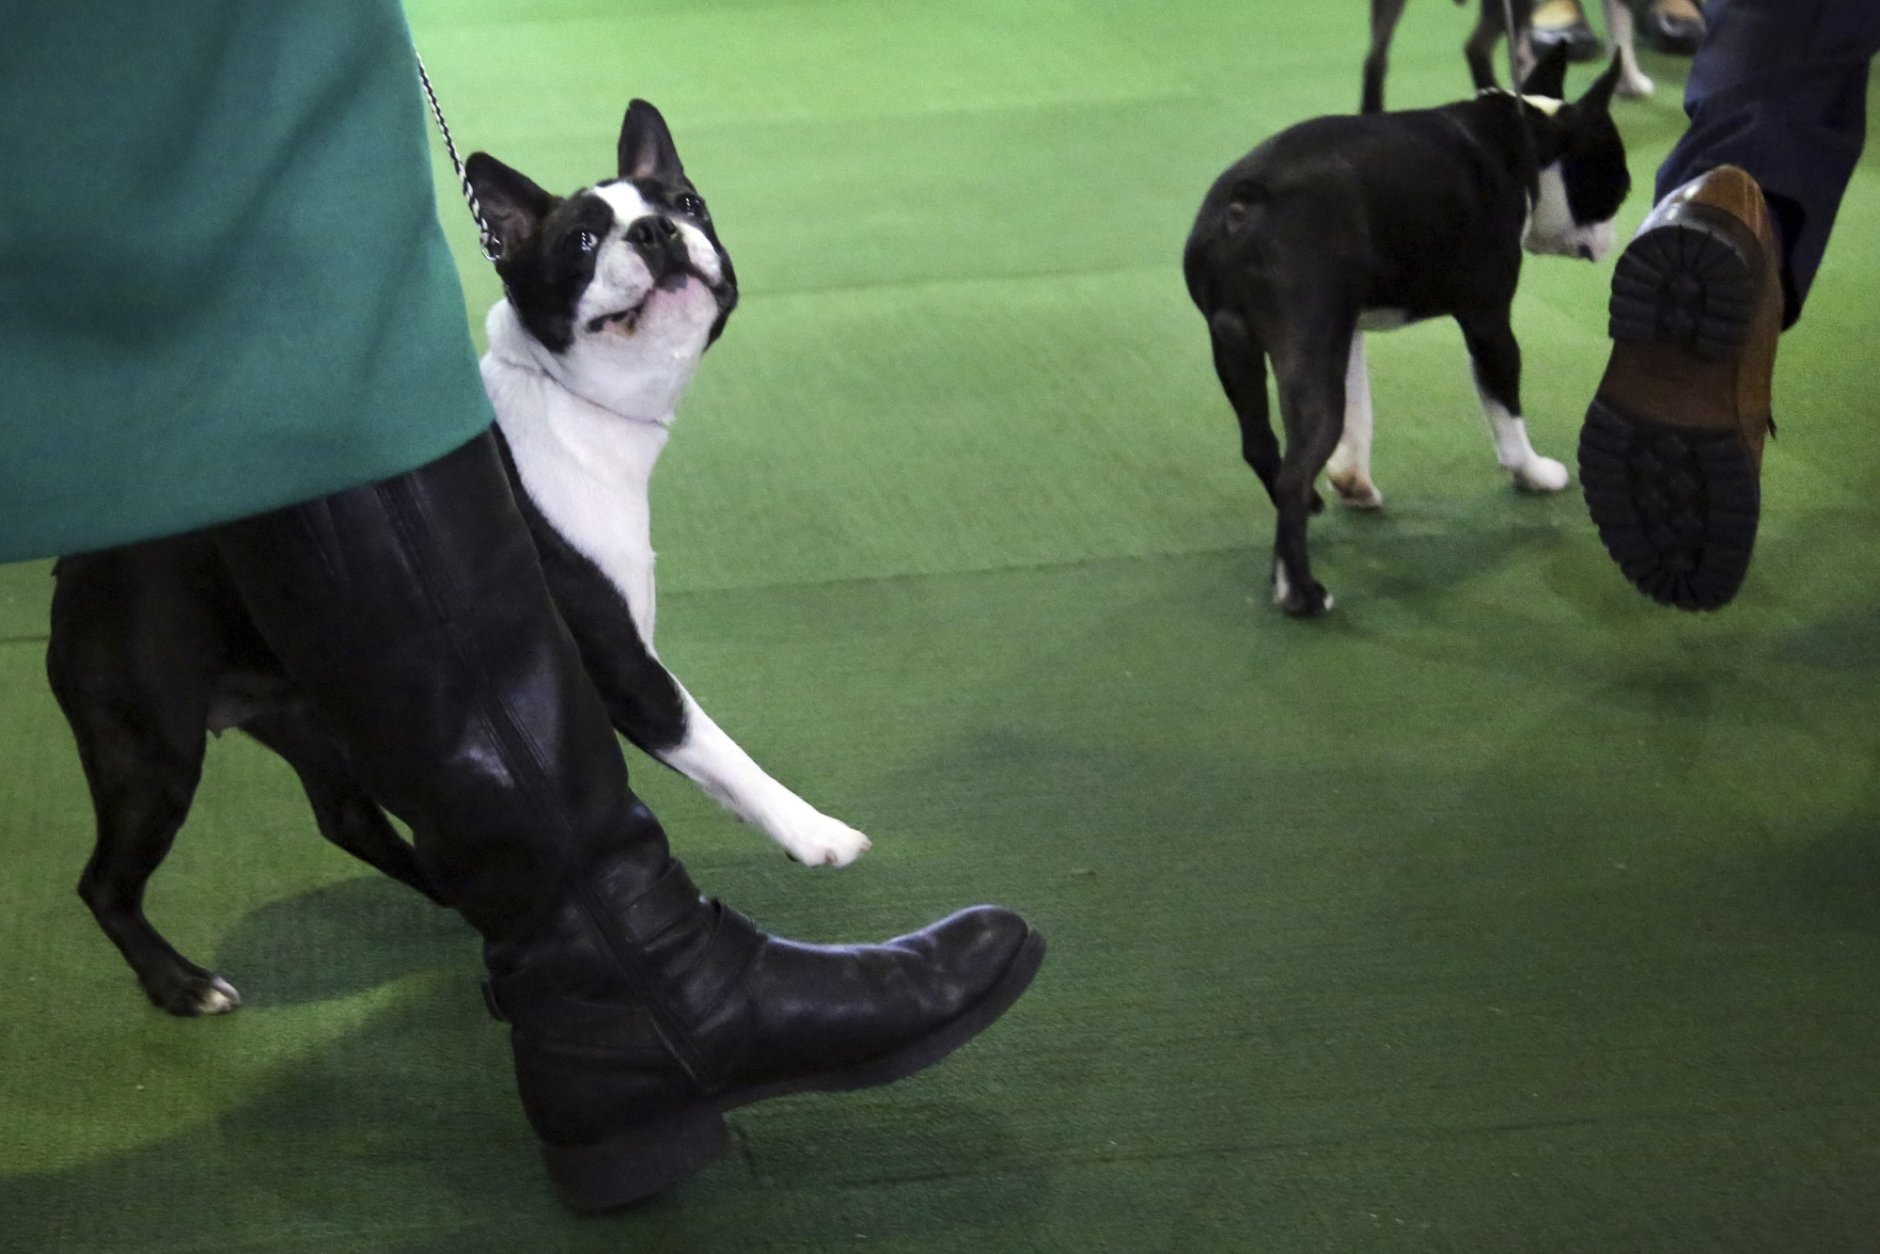 A Boston terrier looks at its handler during the Best in Breed event at the Westminster Kennel Club dog show on Monday, Feb. 11, 2019, in New York. (AP Photo/Wong Maye-E)